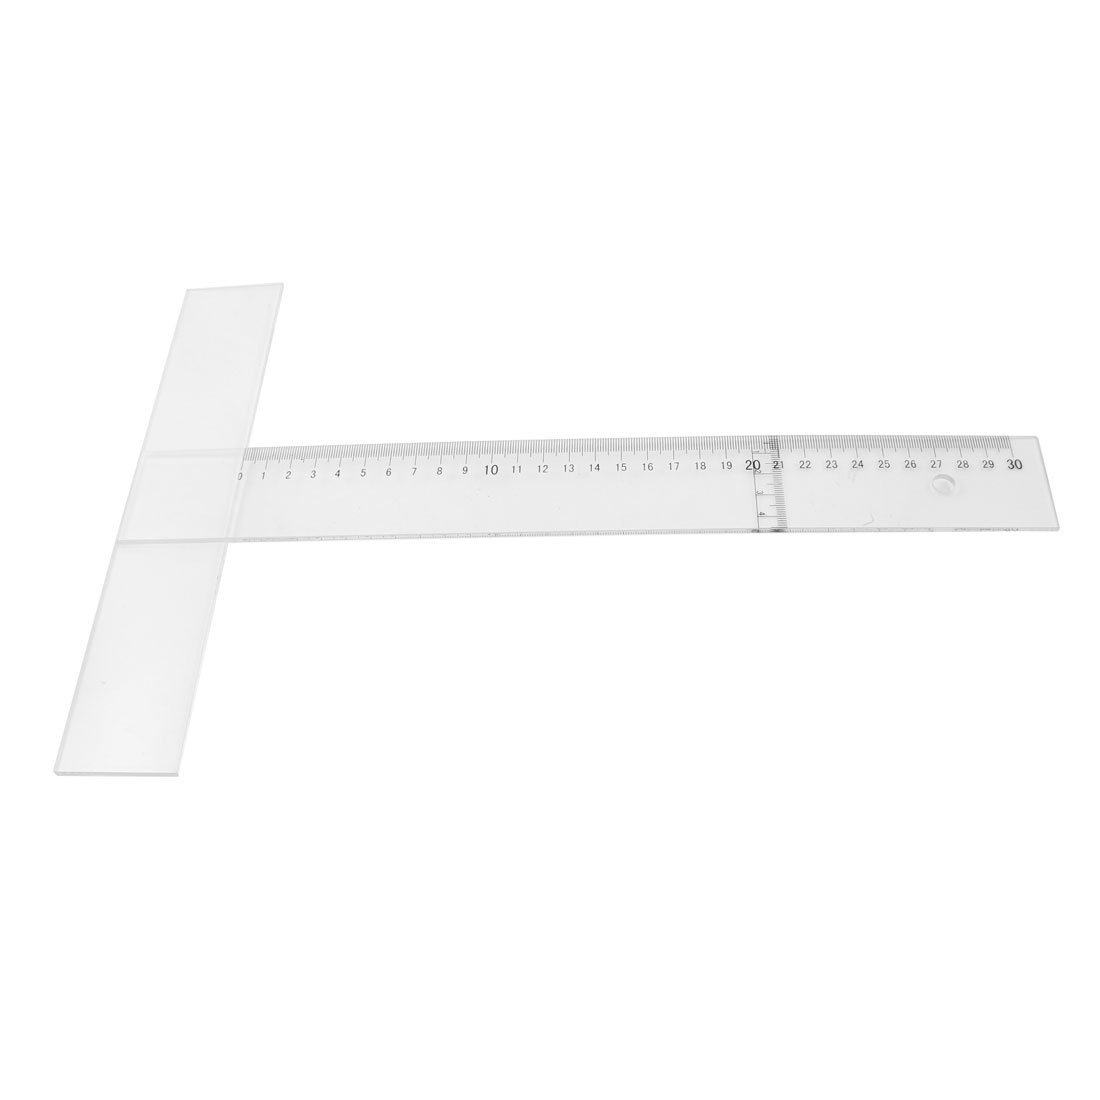 Uxcell Arabic T-Square Ruler, 30cm Measurement, Clear Black for Students